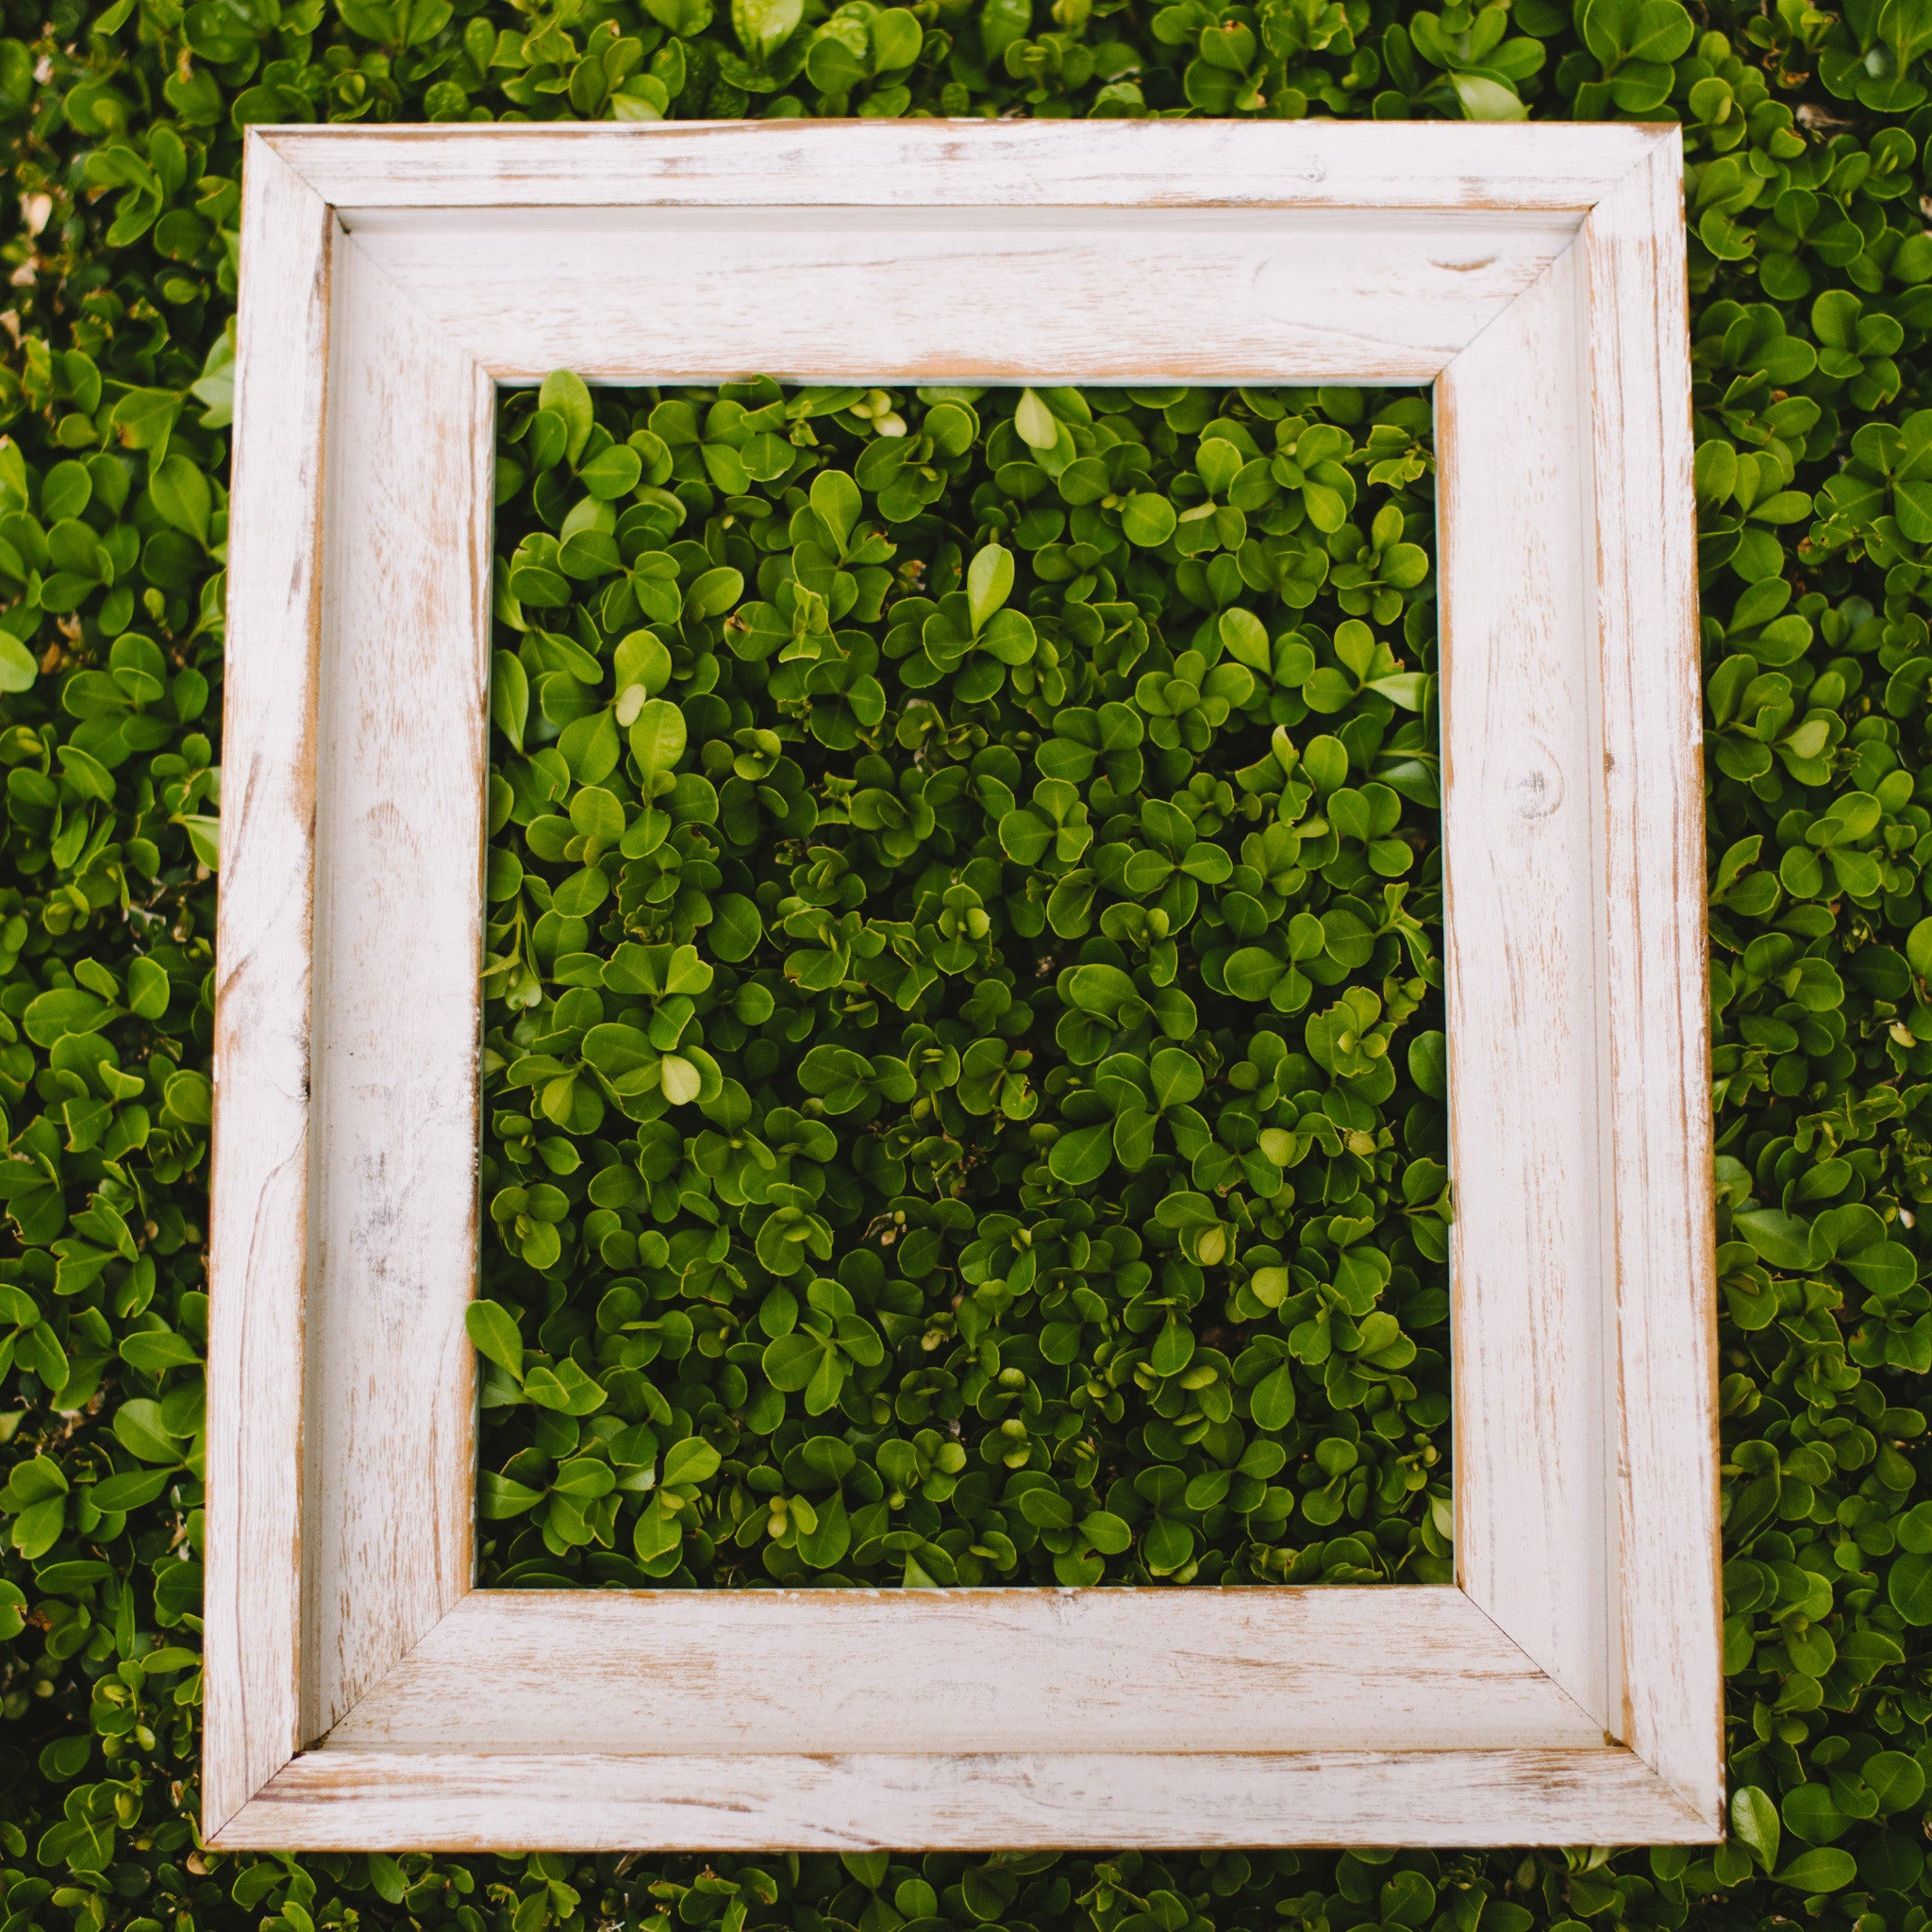 Handcrafted Picture Frames for Sale   Chirpwood, LLC - Chirpwood LLC